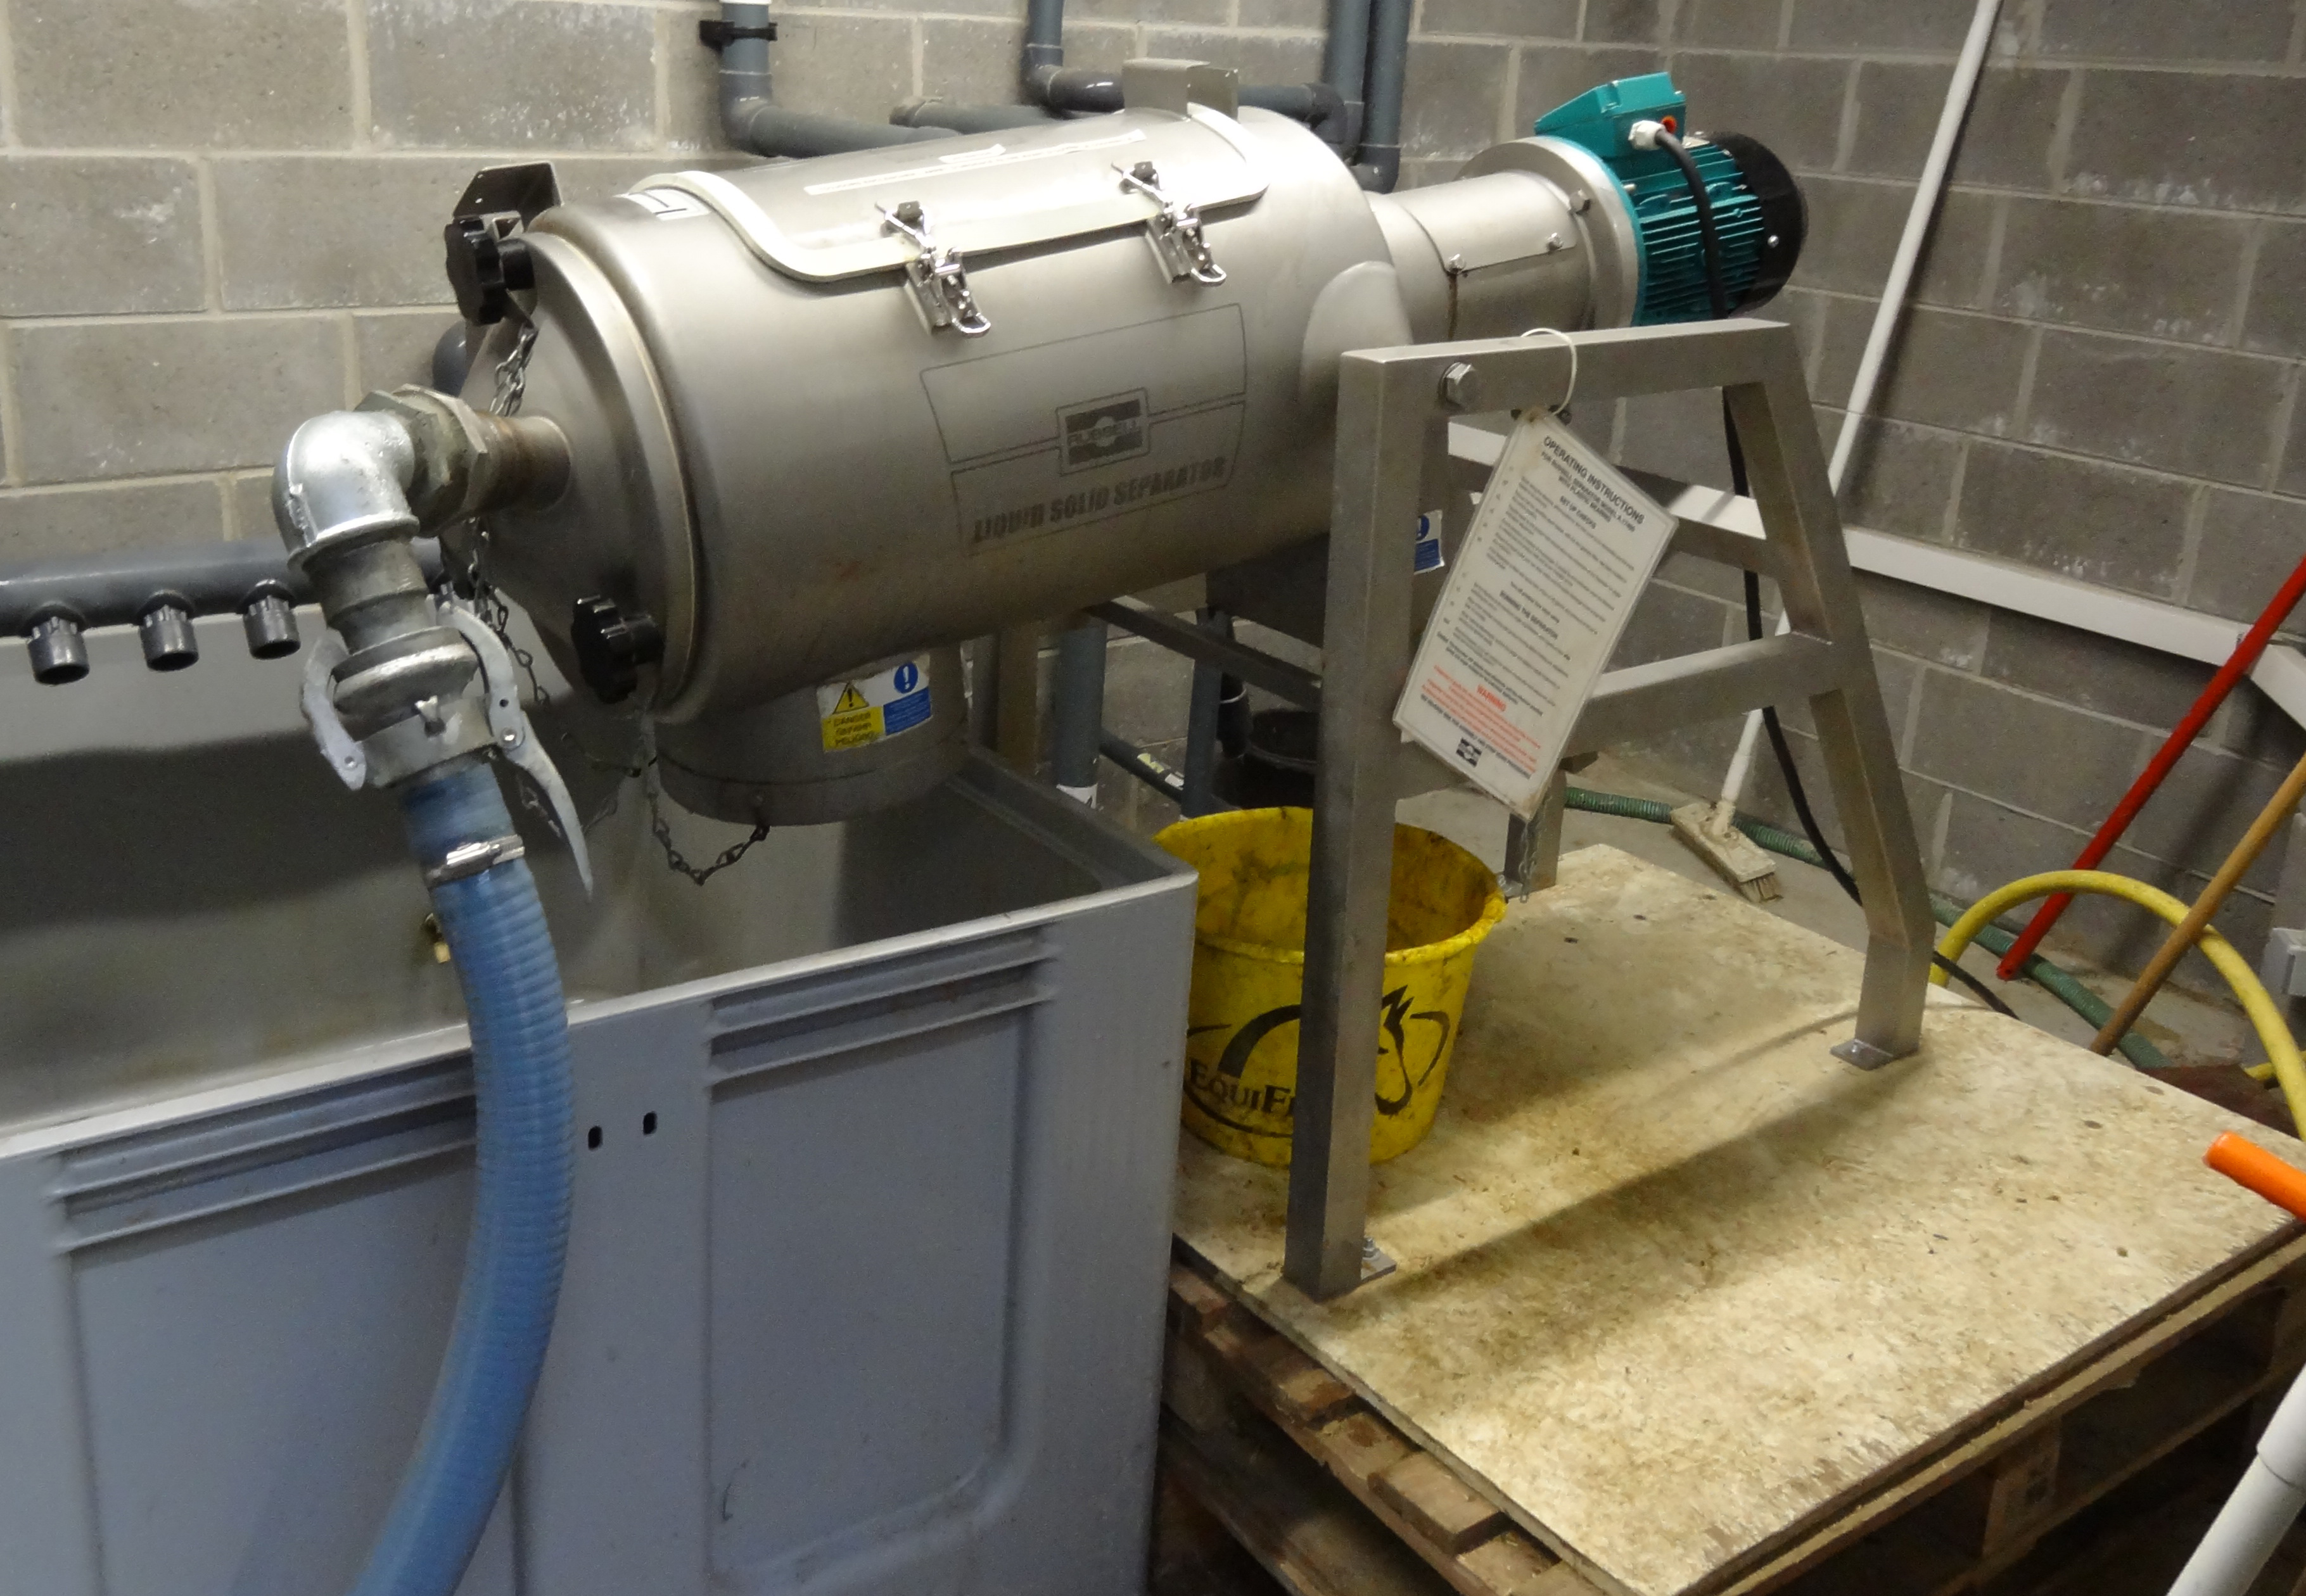 Centrifugal separator removes animal waste during hydrotherapy training session